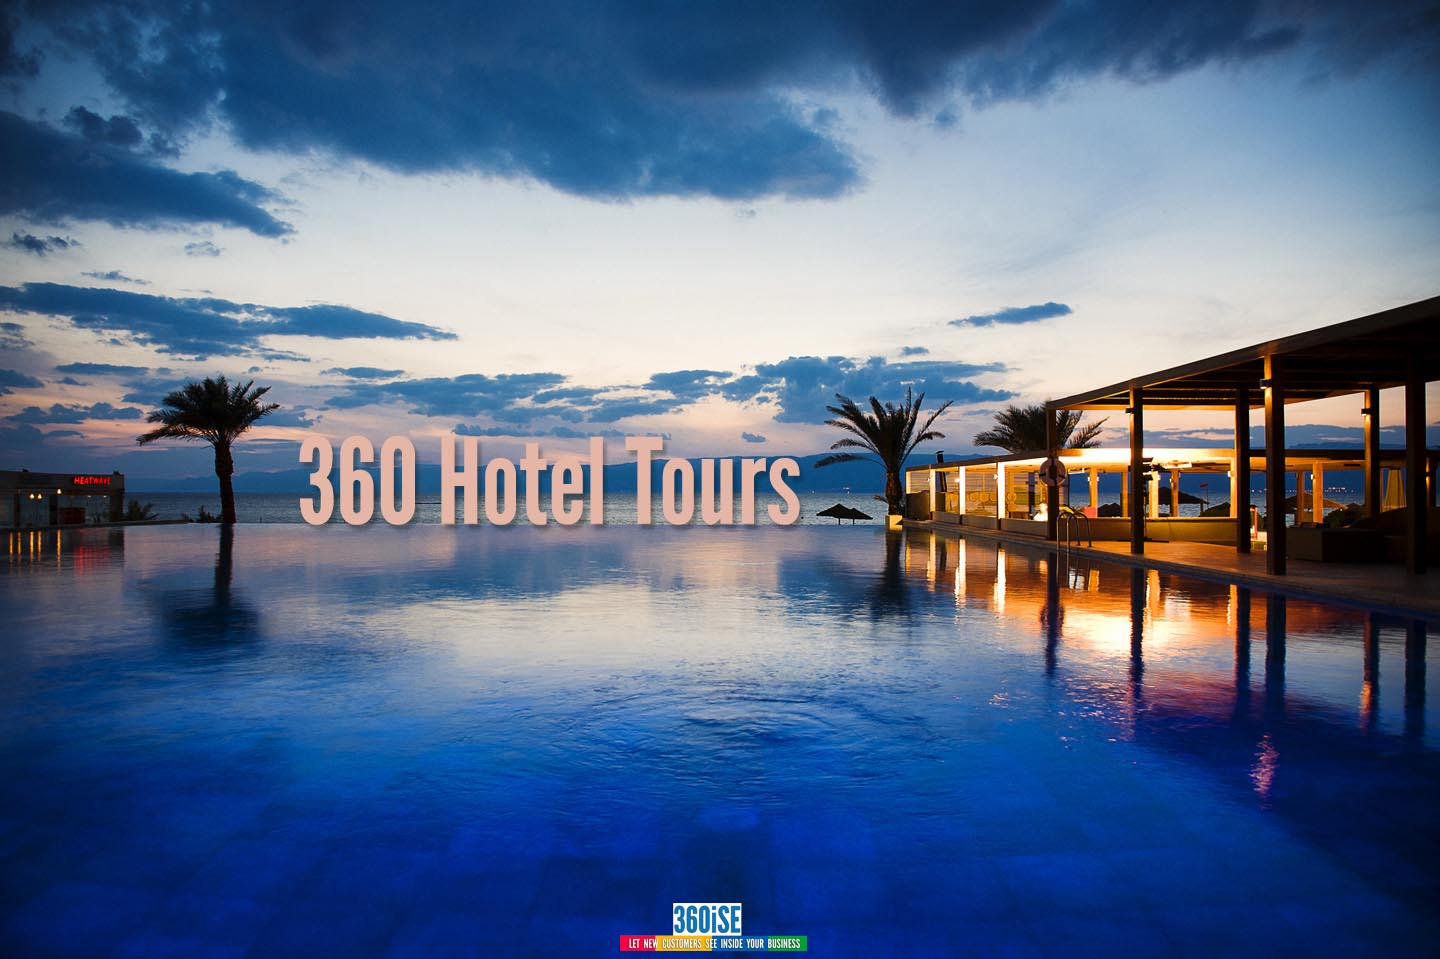 360 Hotel Tours